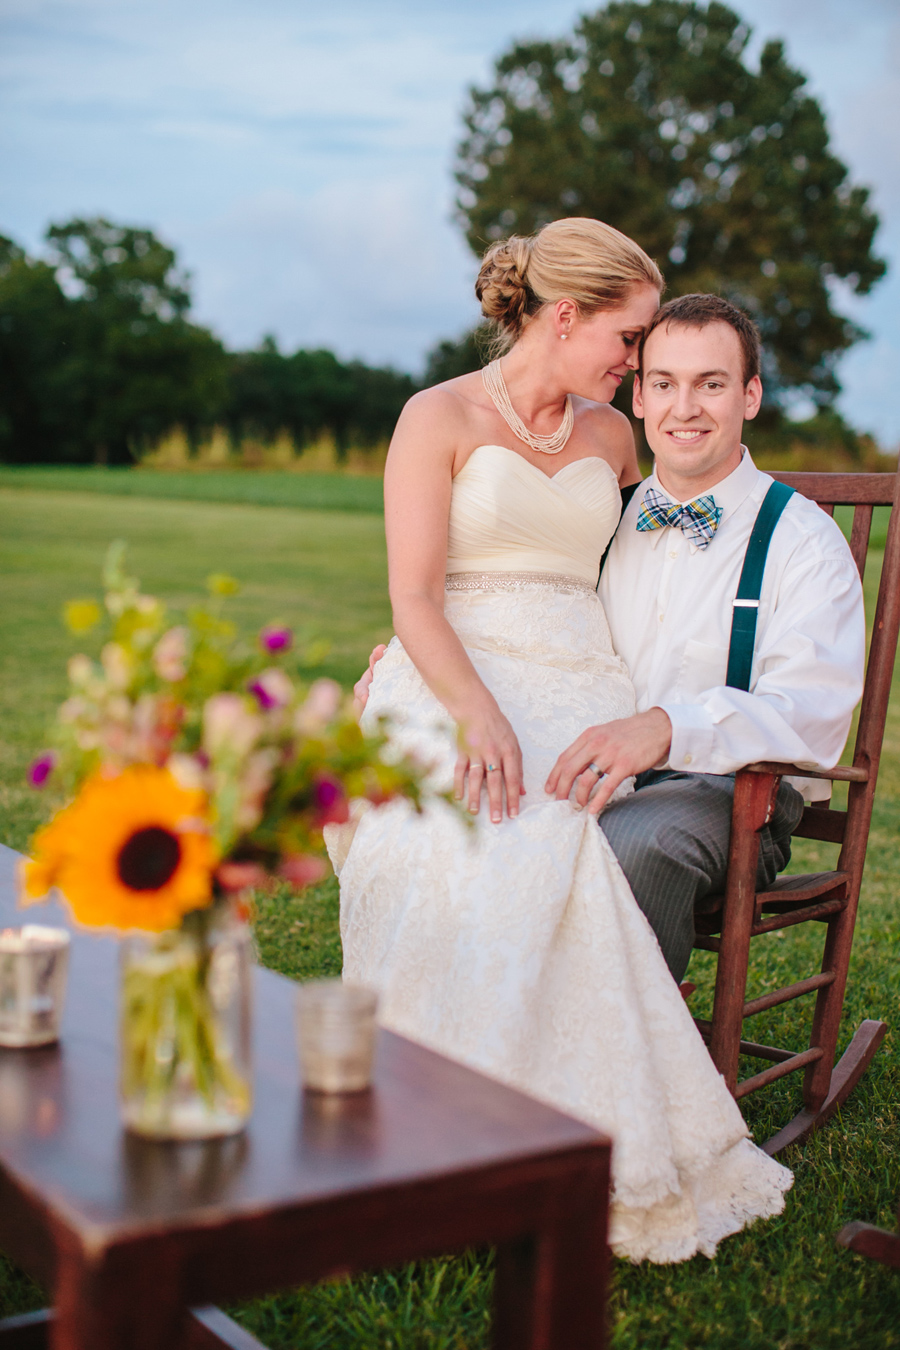 Quintessential Charleston wedding bliss with colorful flowers and a rocking chair by the river at this Island House wedding. © Carolina Photosmith